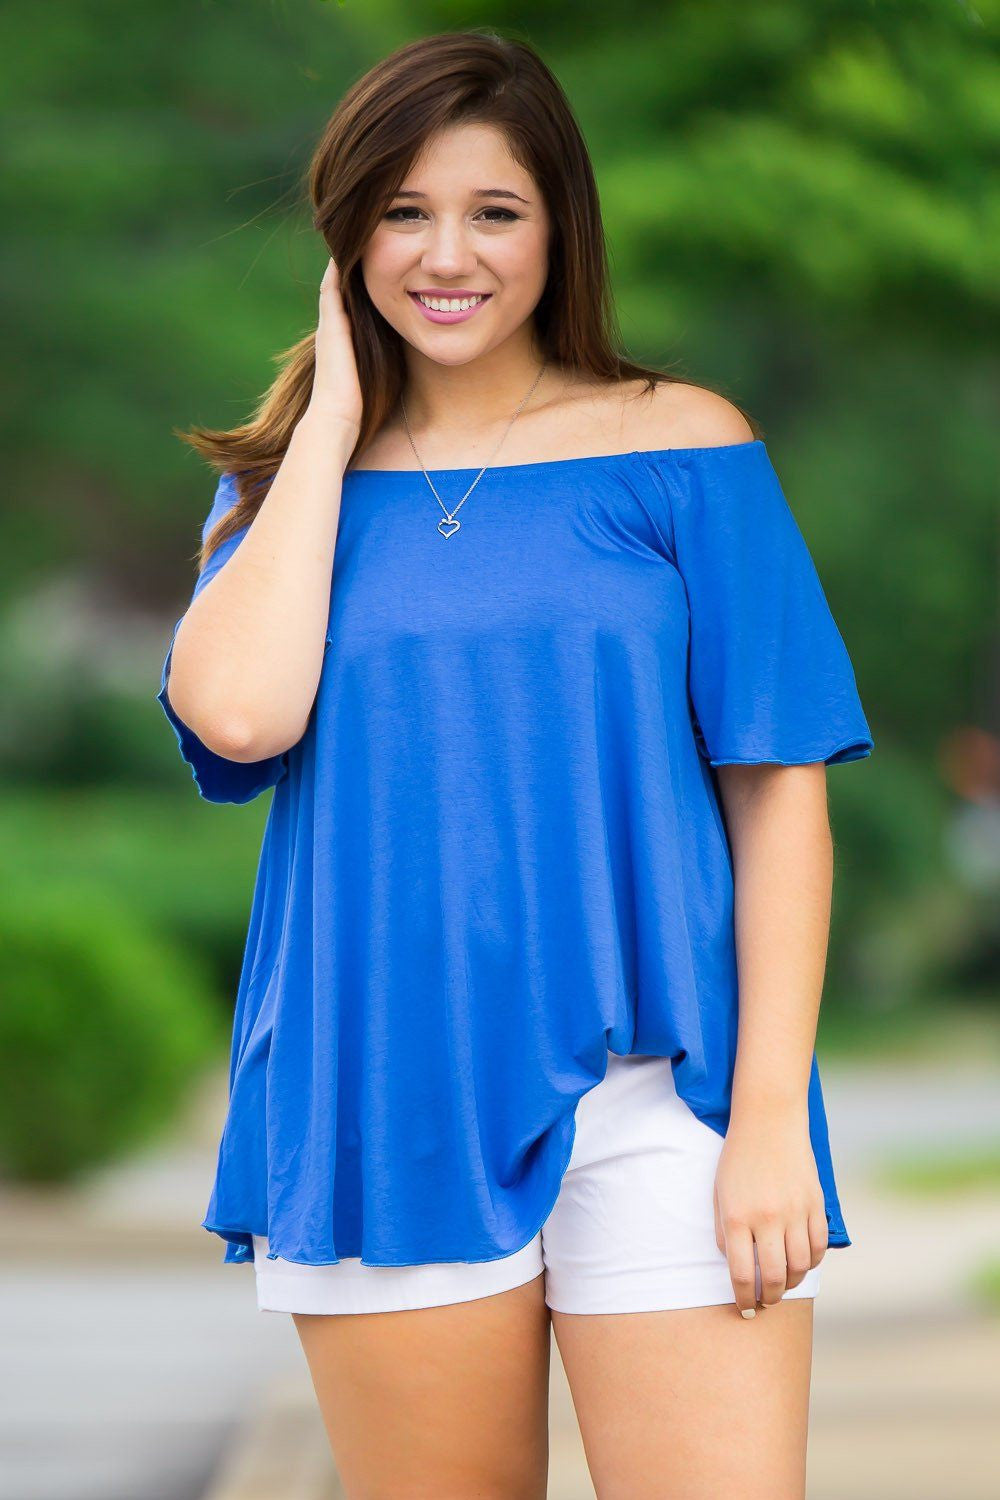 Off The Shoulder Short Sleeve Piko Top - Royal - Piko Clothing